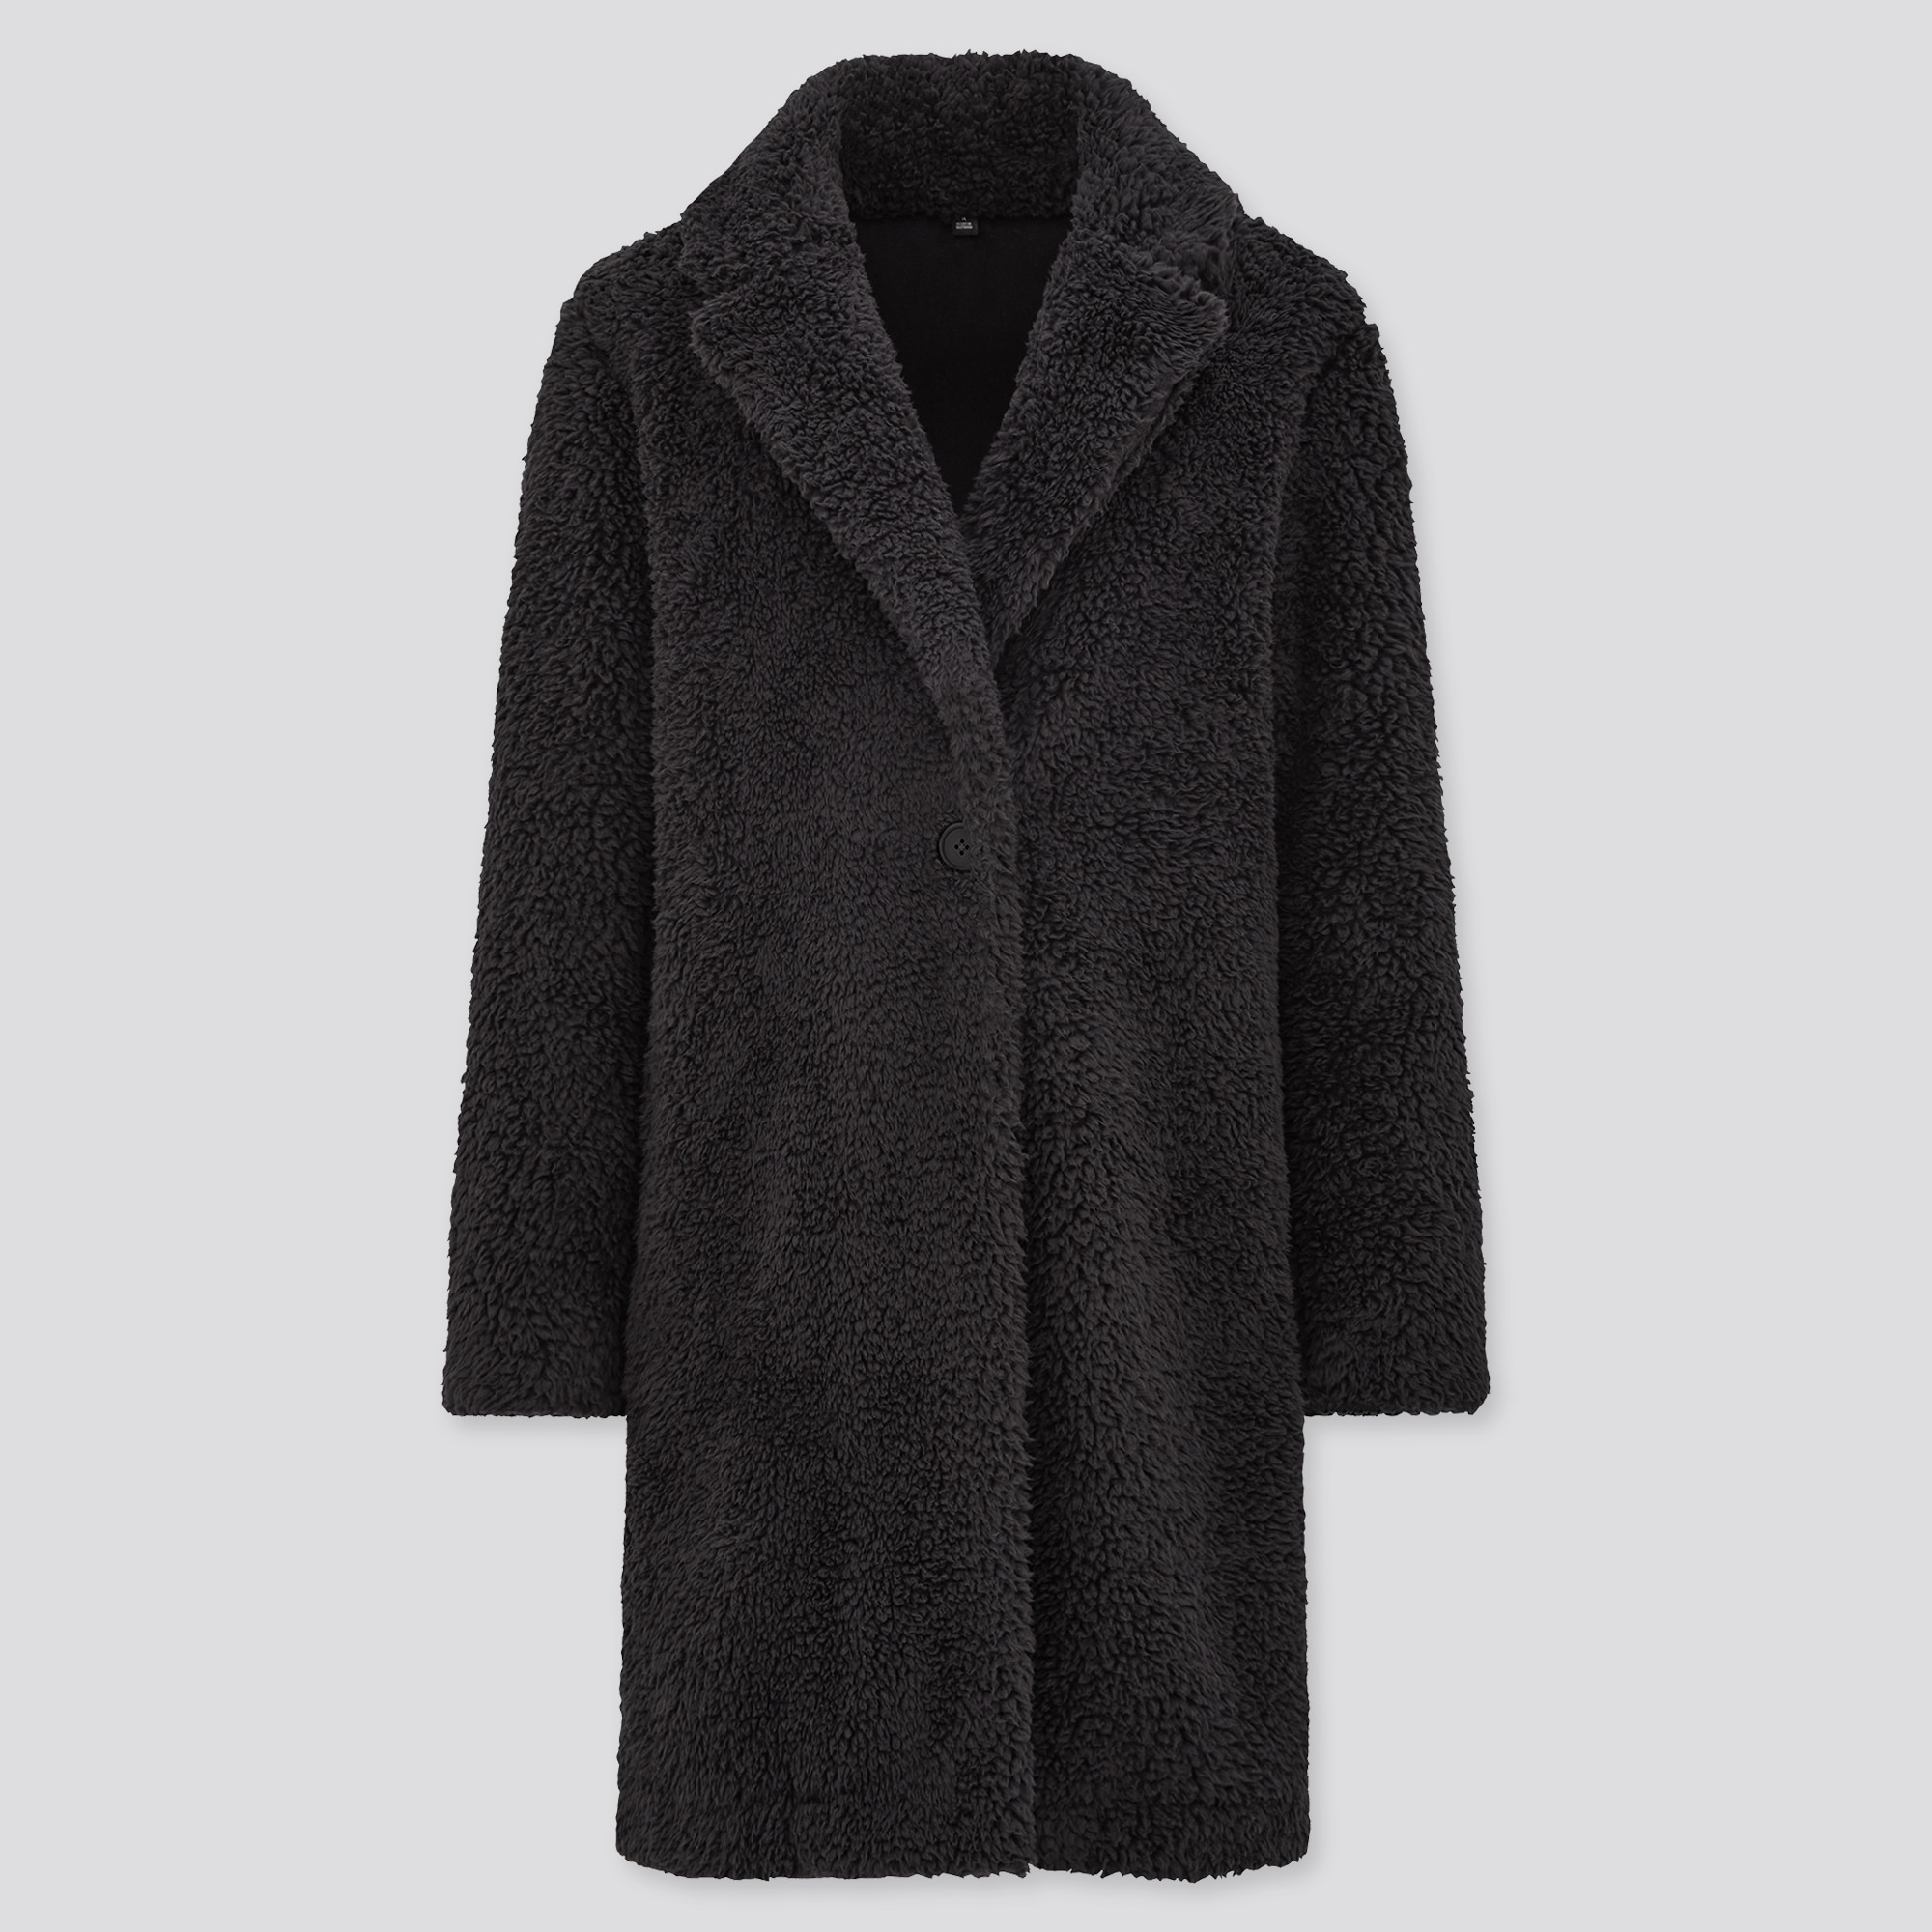 women pile-lined fleece tailored coat